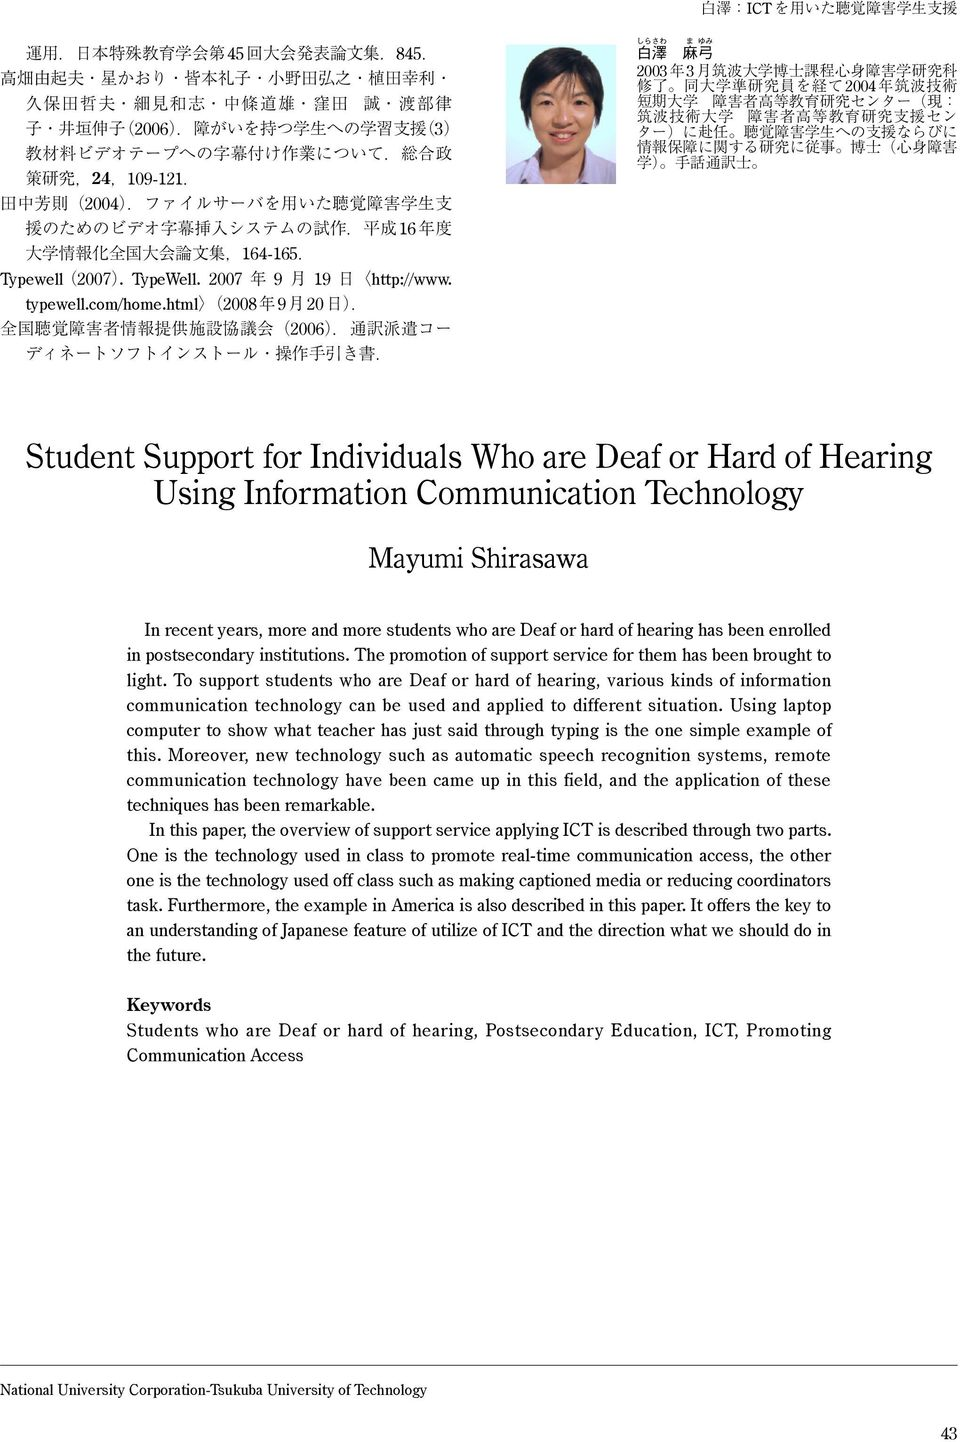 are Deaf or hard of hearing has been enrolled in postsecondary institutions. The promotion of support service for them has been brought to light.